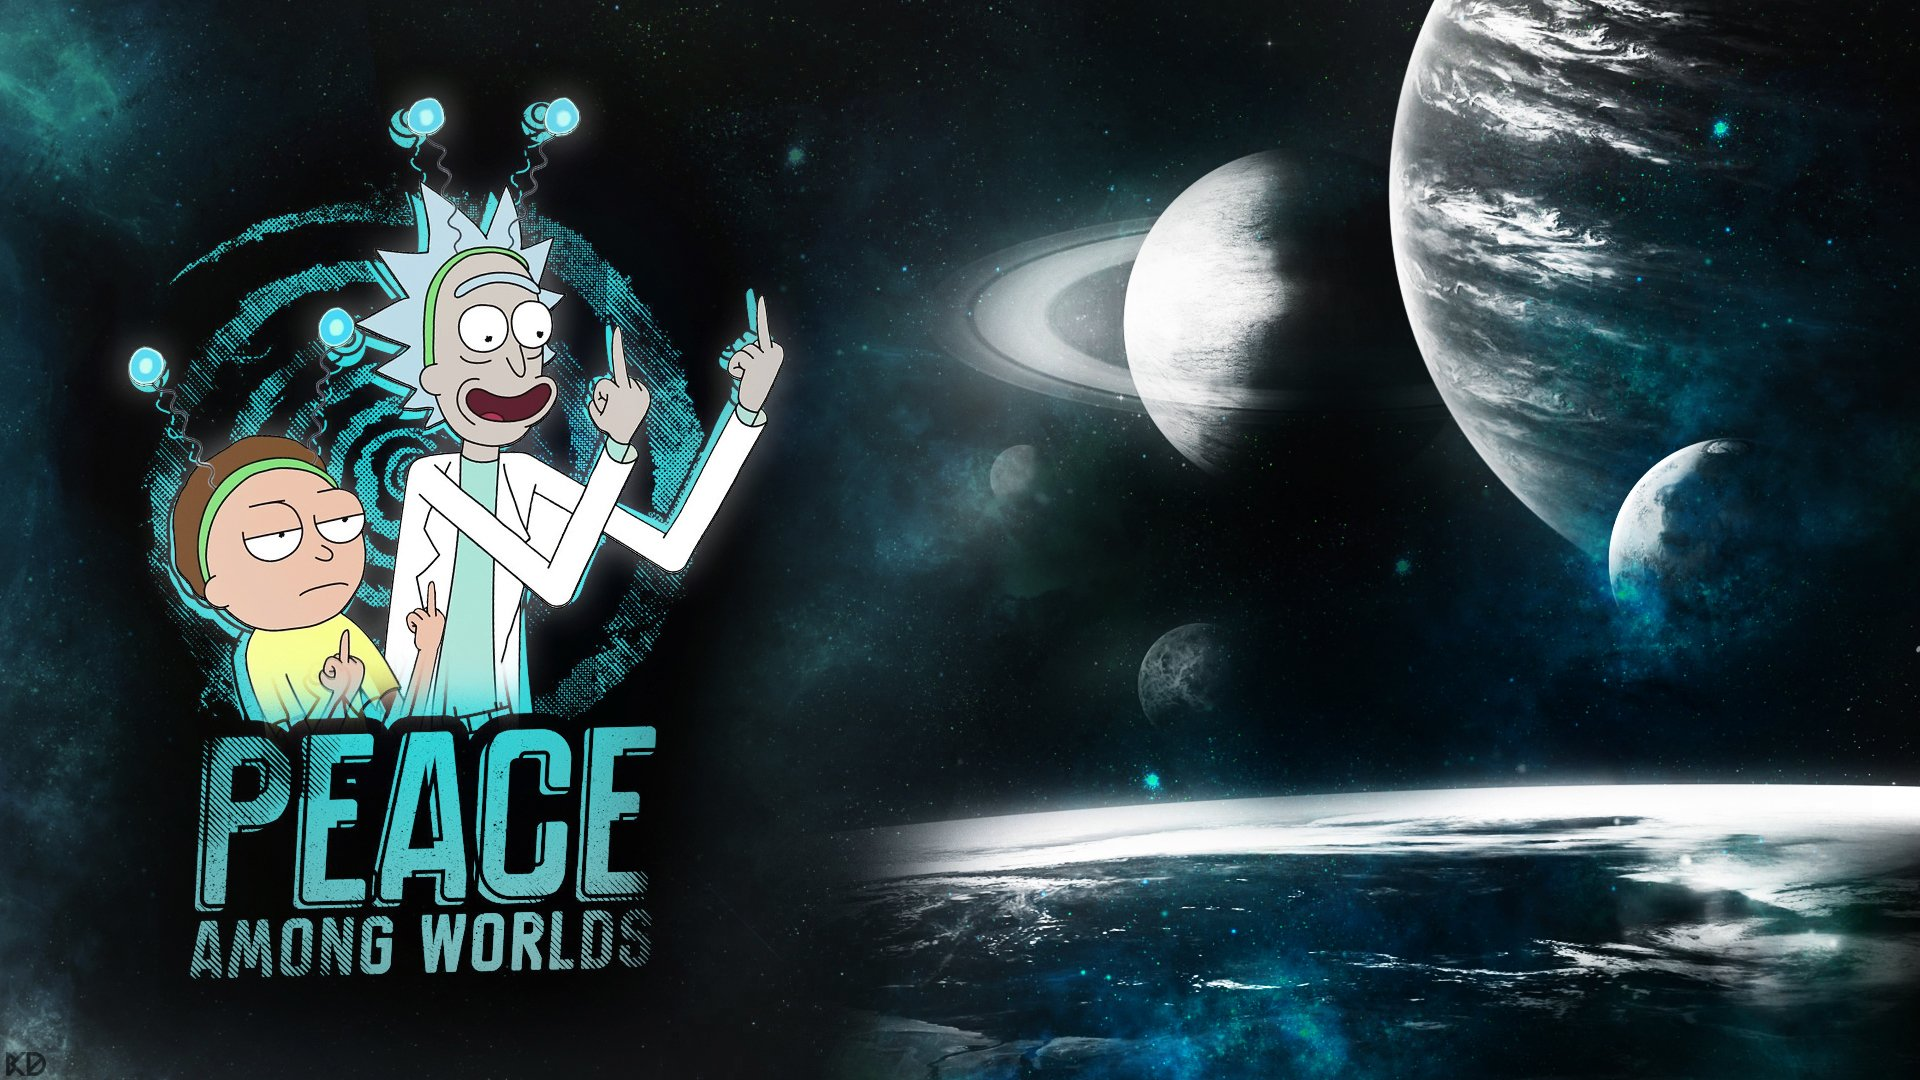 Peace Among Worlds 1080p Hd Wallpaper Background Image